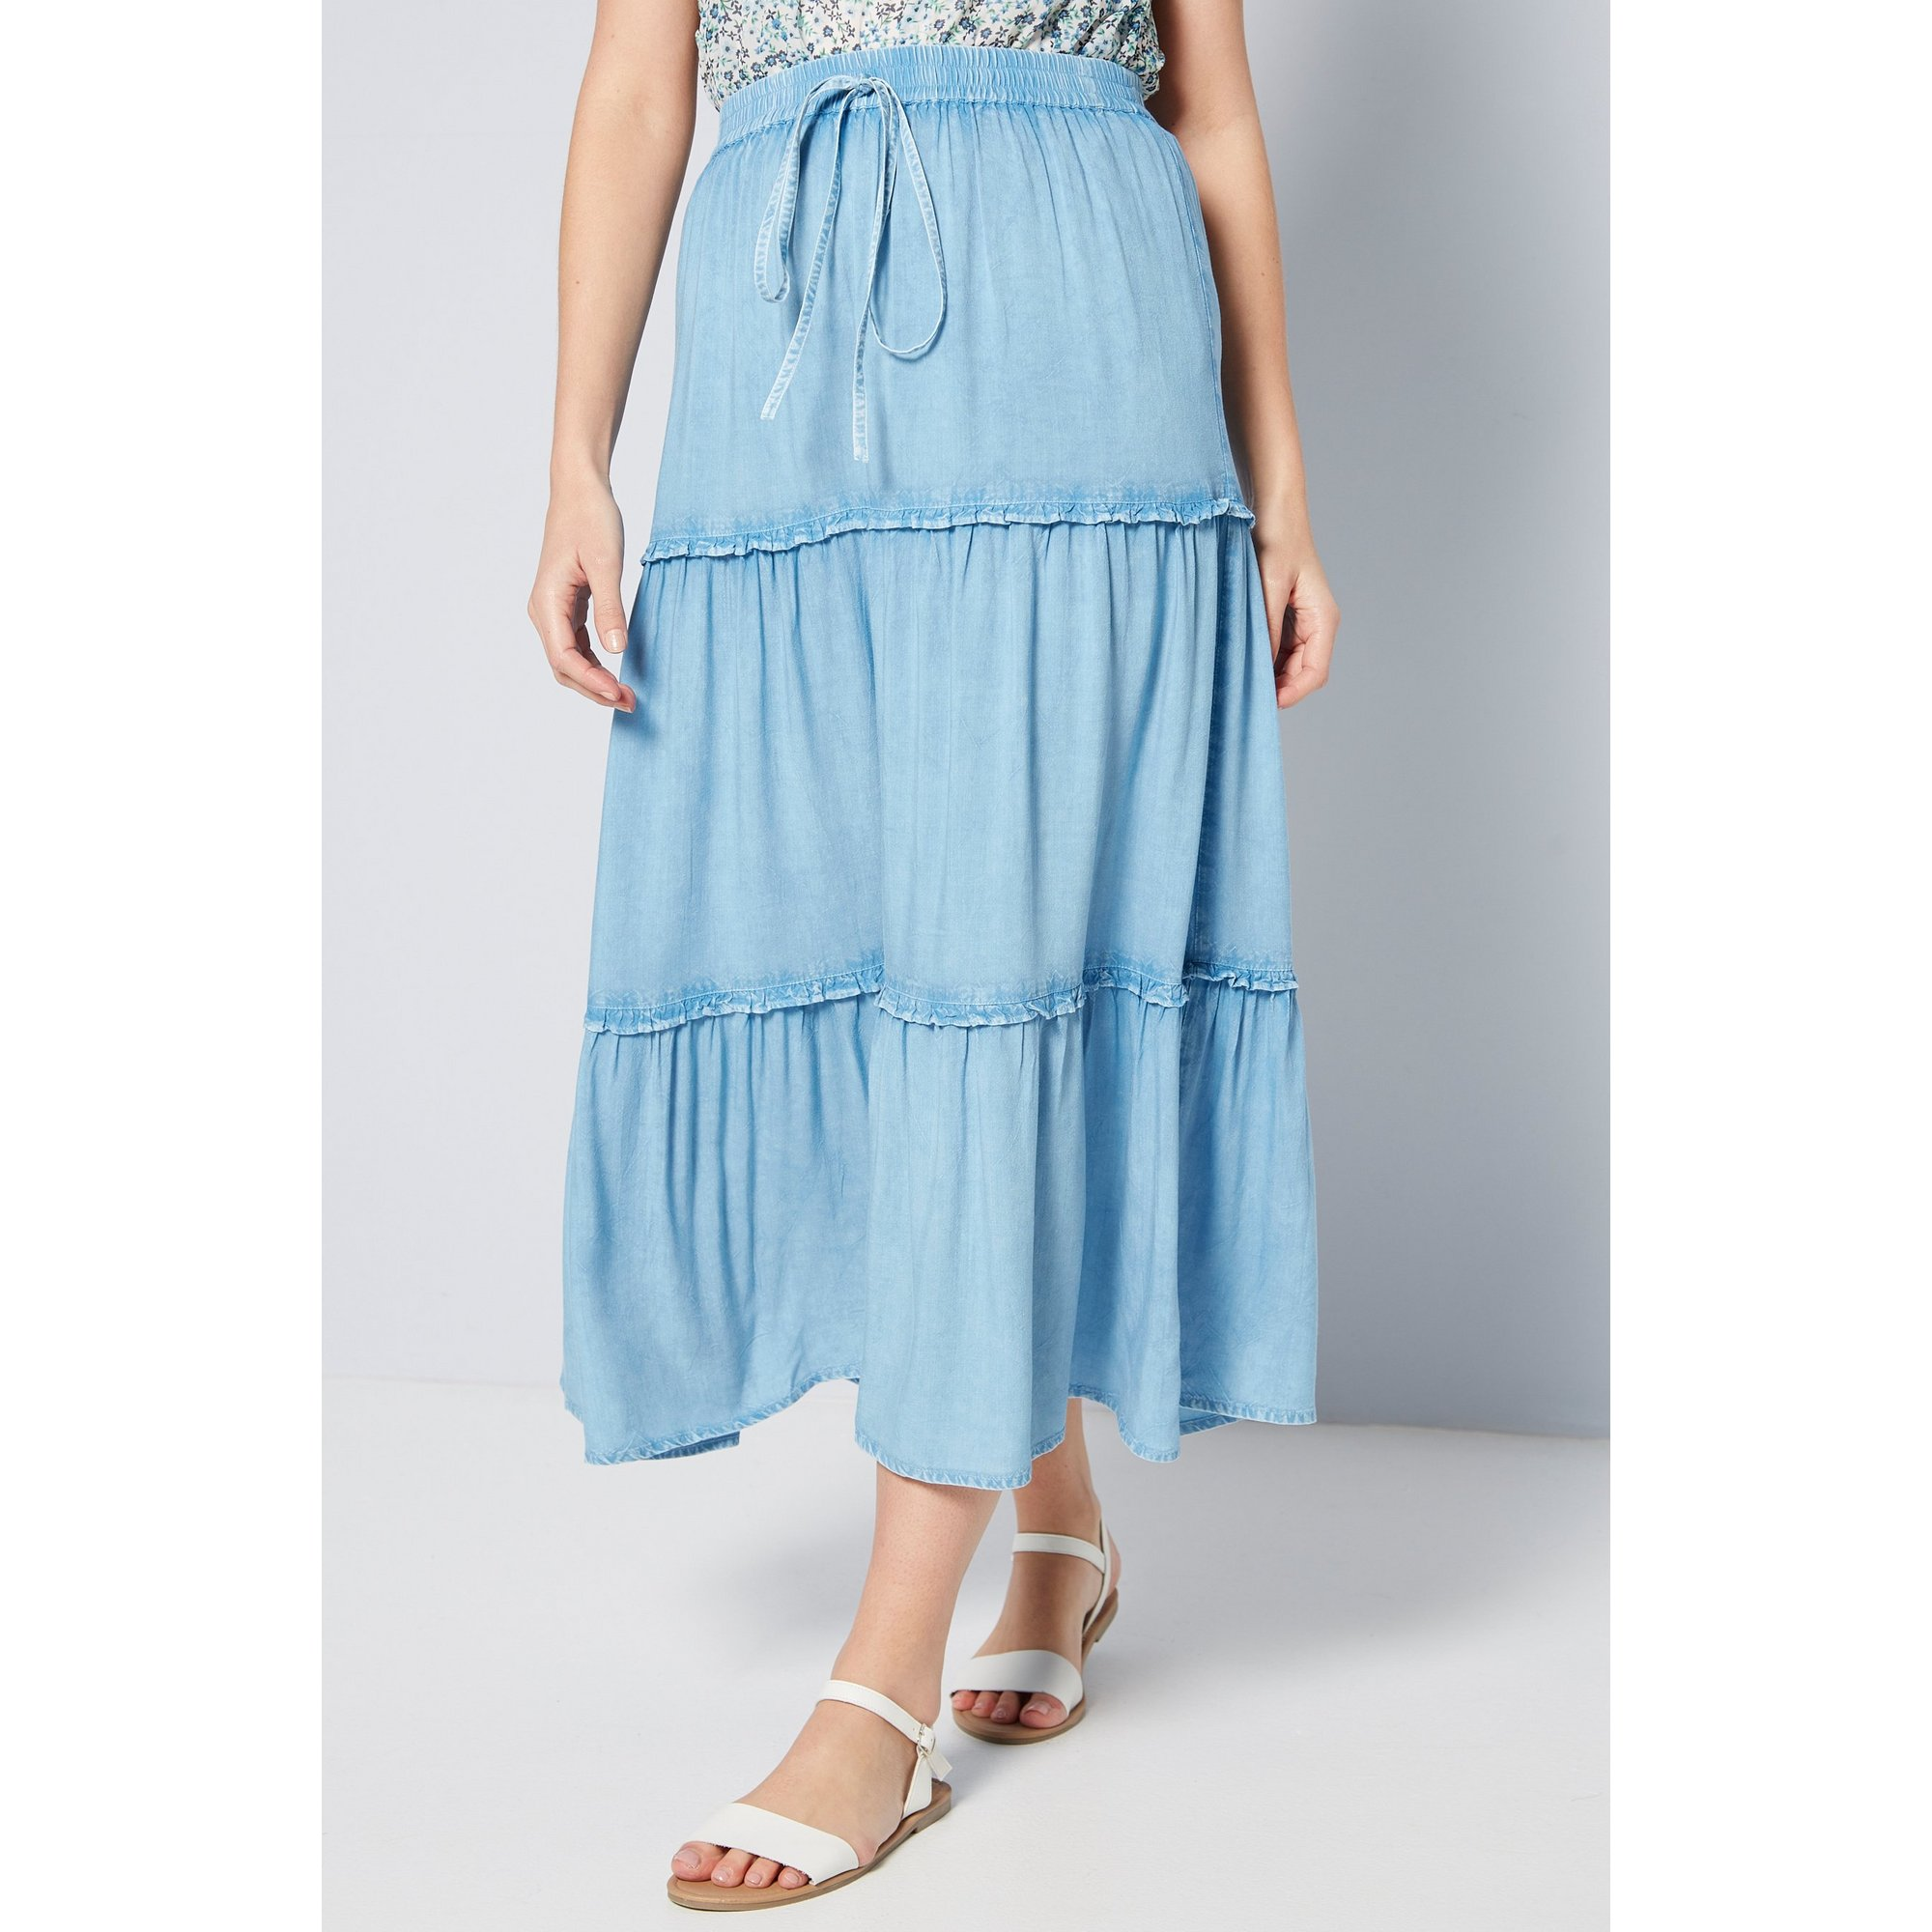 Image of Chambray Tiered Blue Maxi Skirt